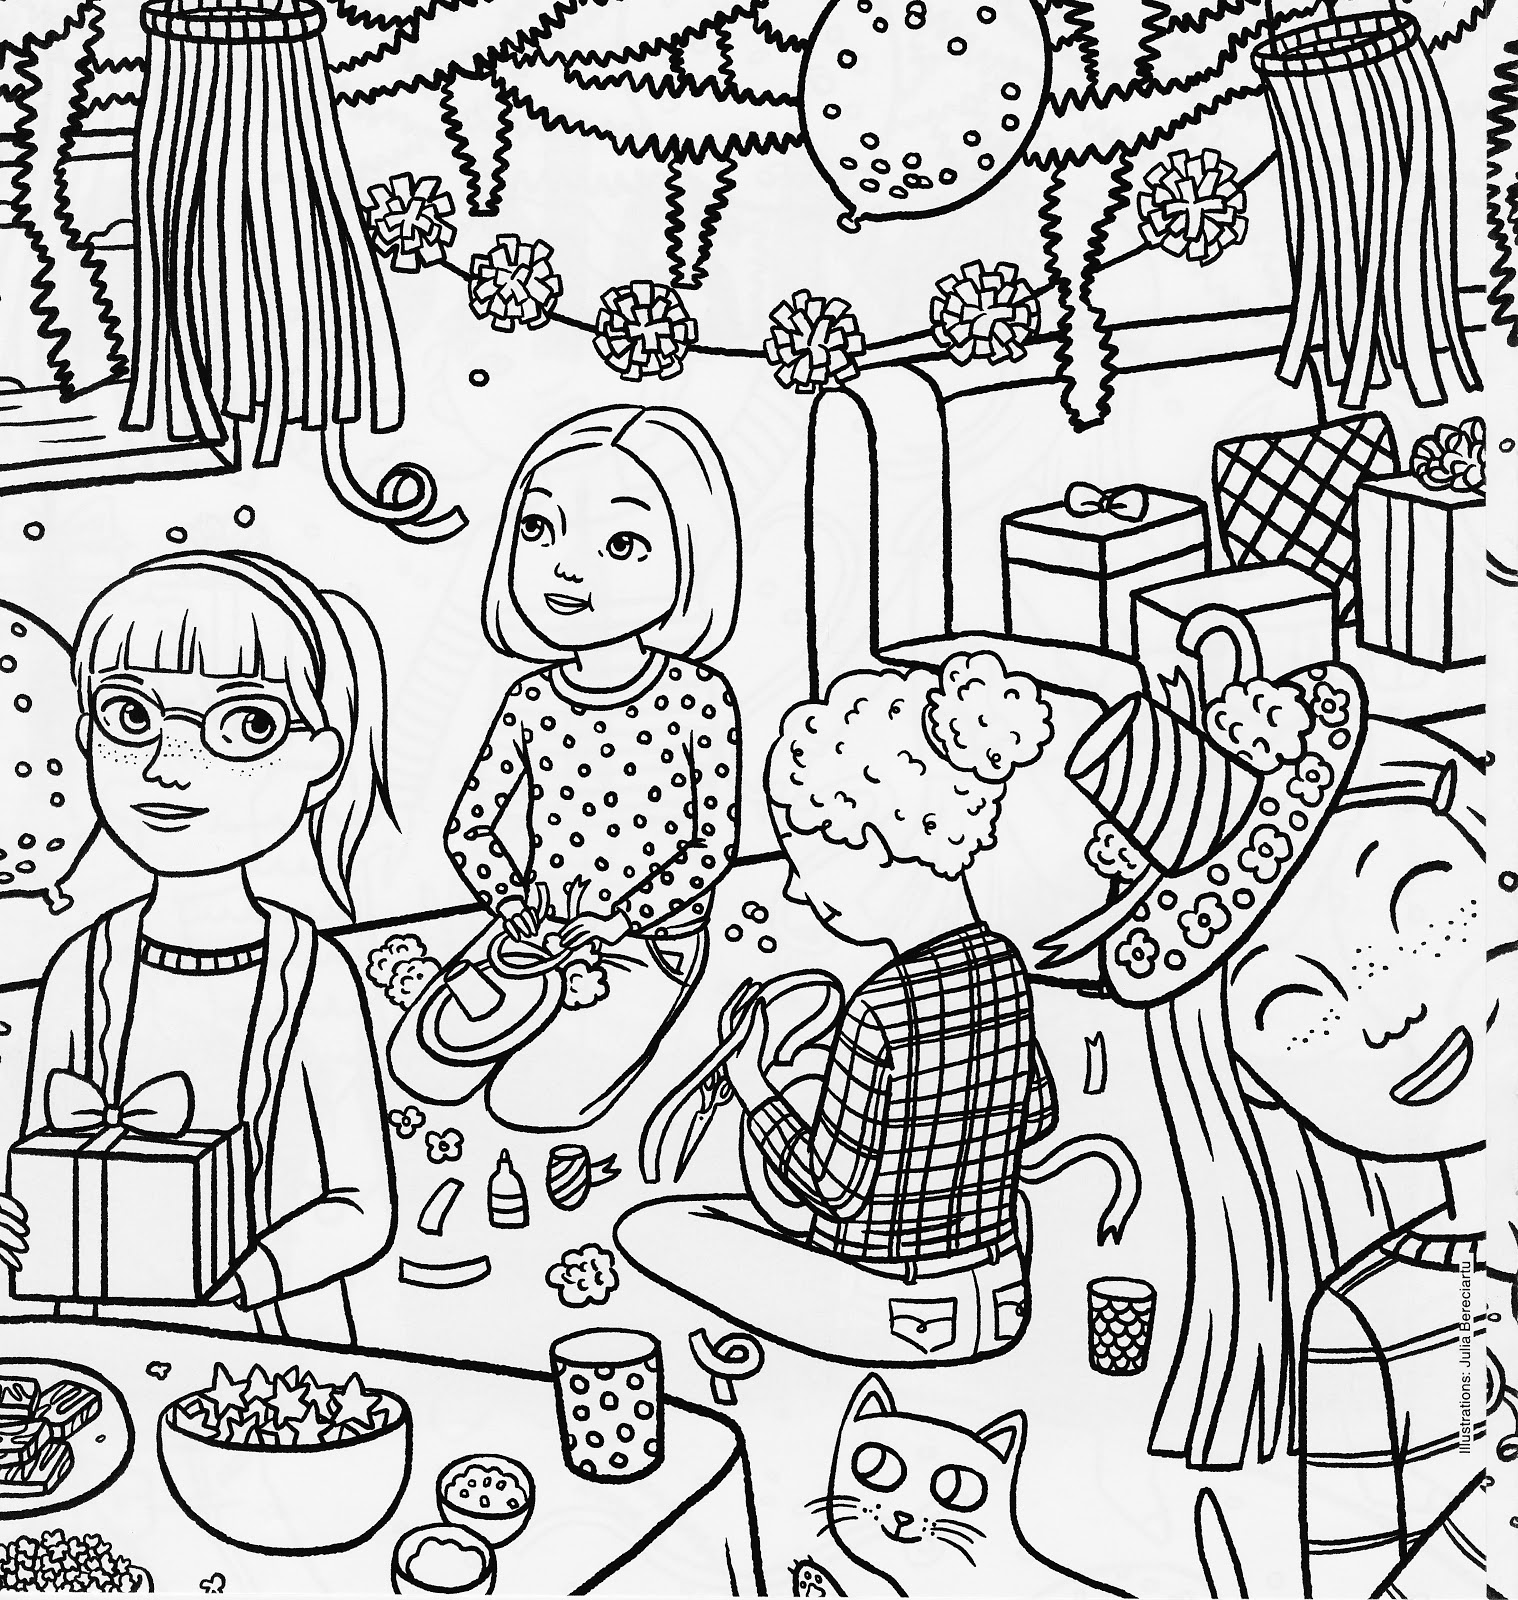 american girl magazine special birthday coloring page - Birthday Coloring Pages Girls